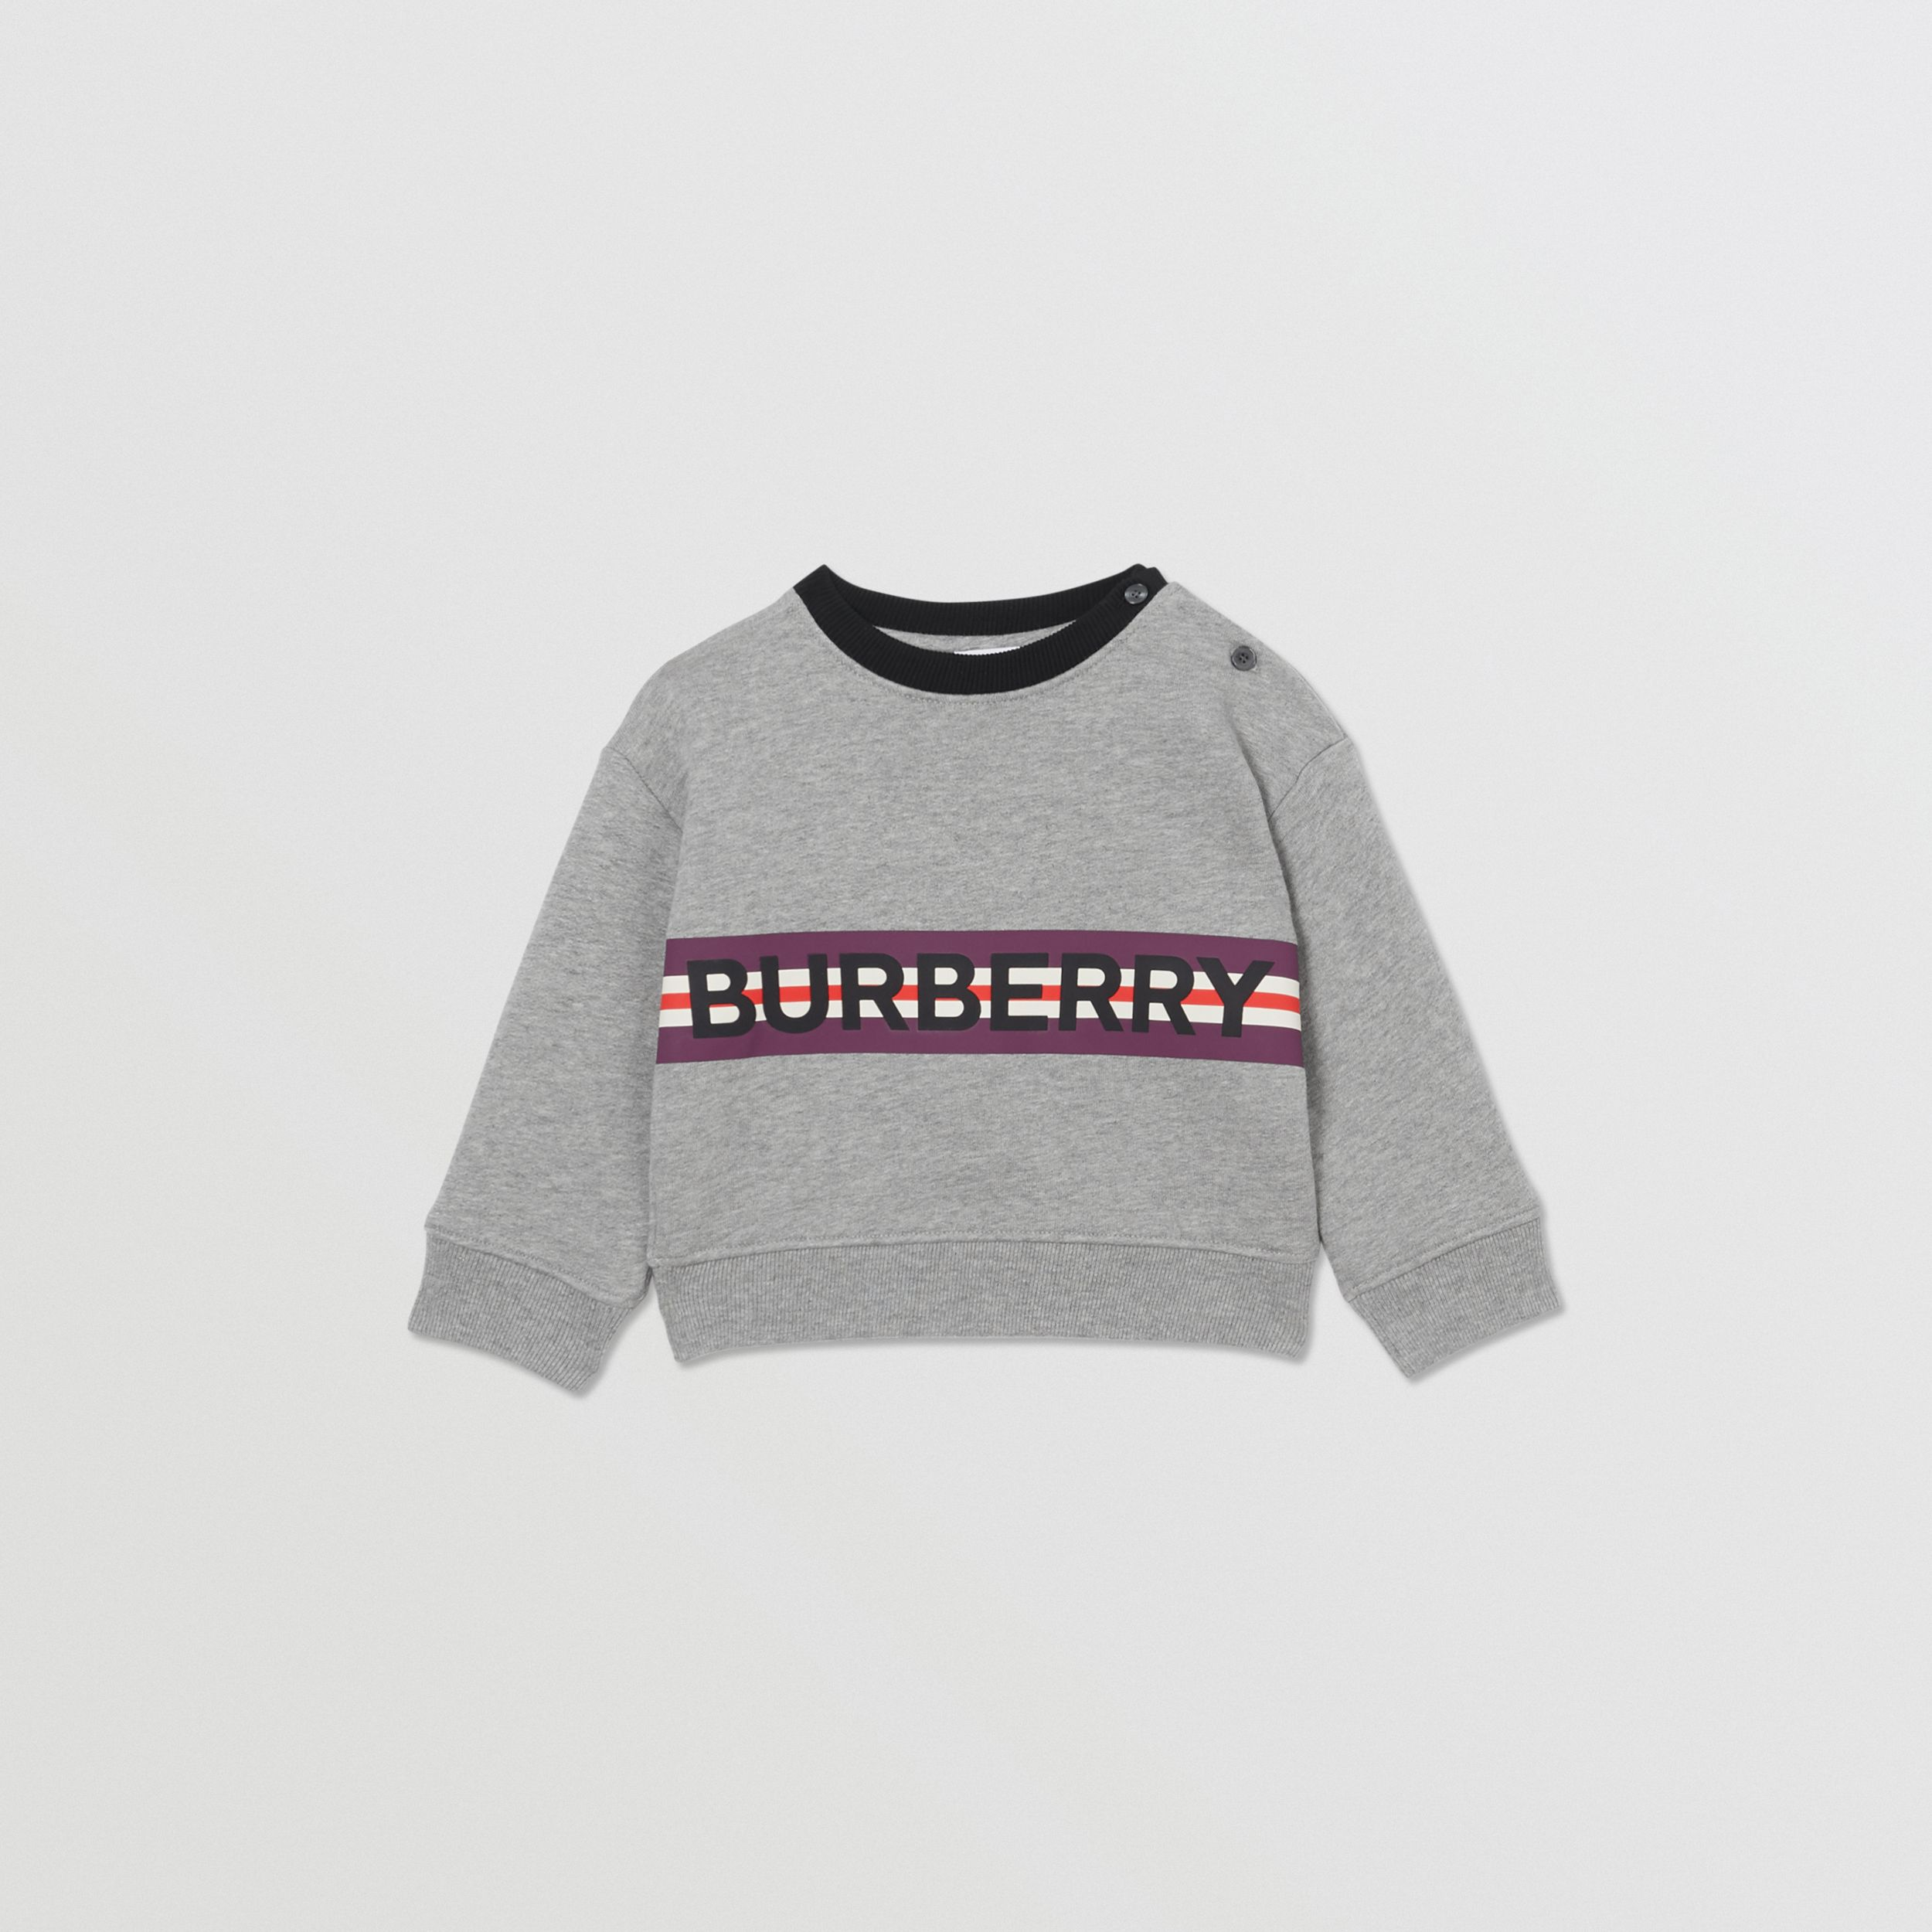 Logo Print Jersey Sweatshirt in Grey Melange - Children | Burberry - 1